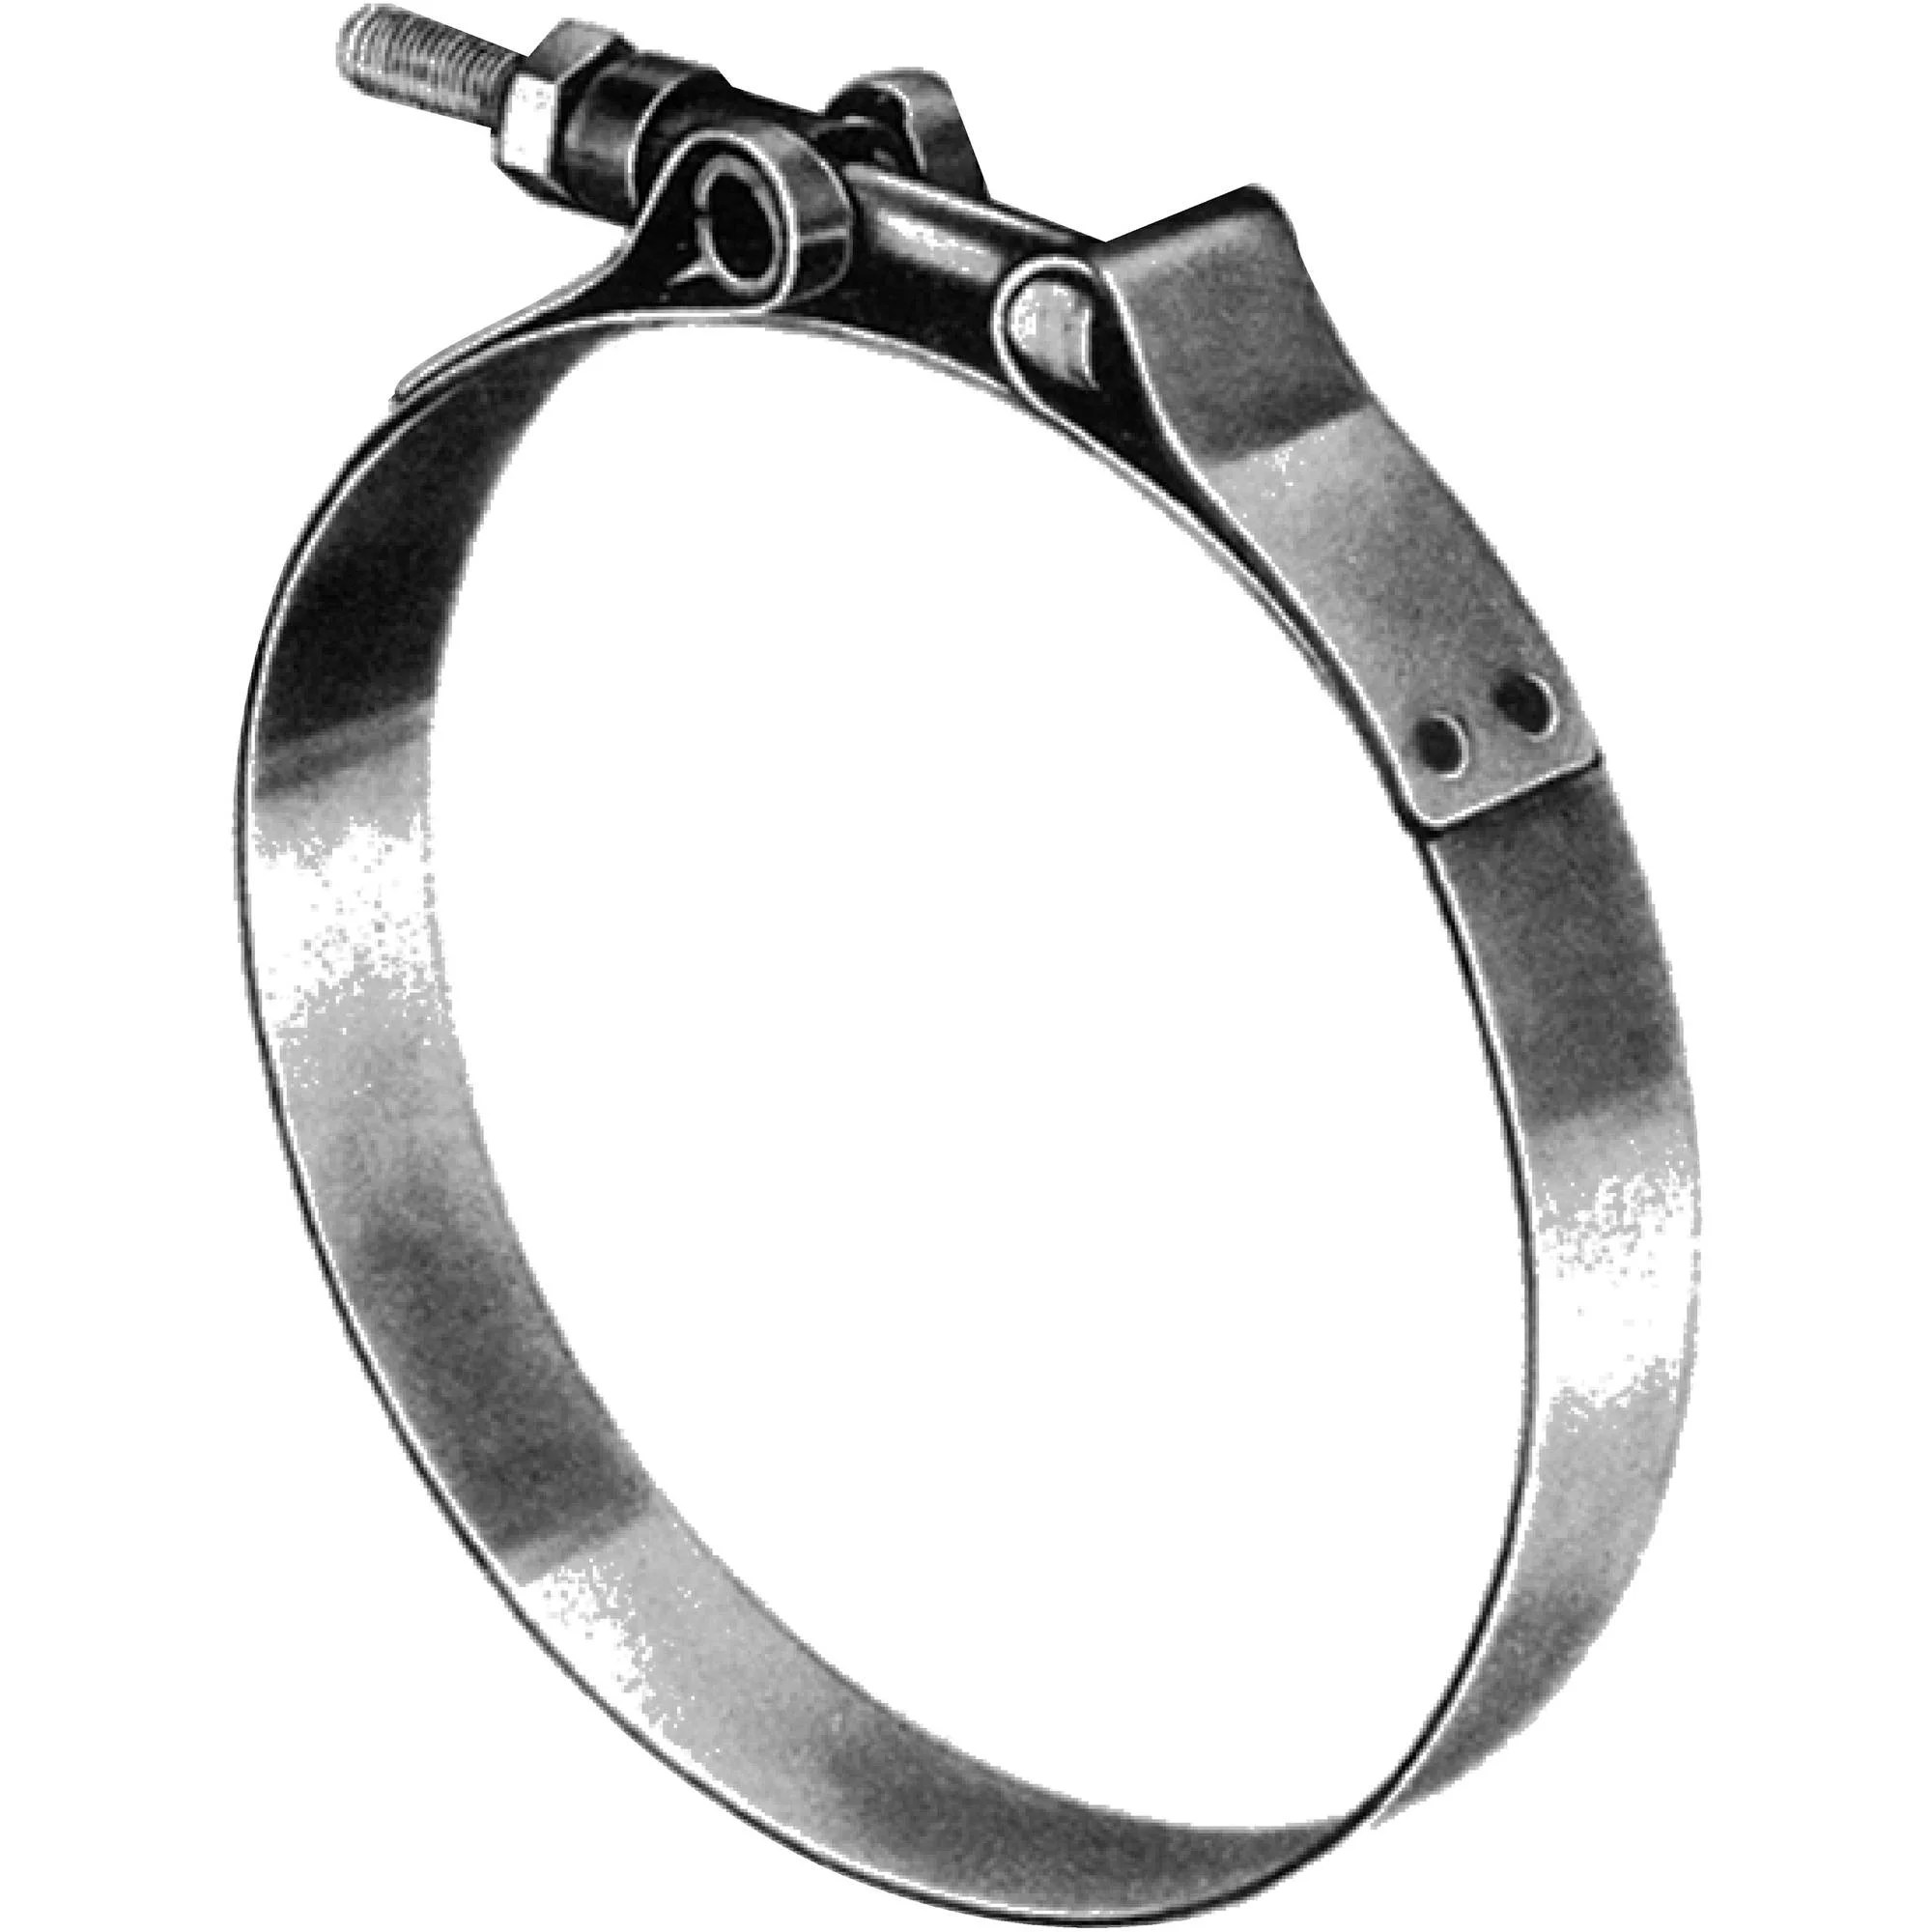 shields marine exhaust hose t bolt 3 4 band clamp